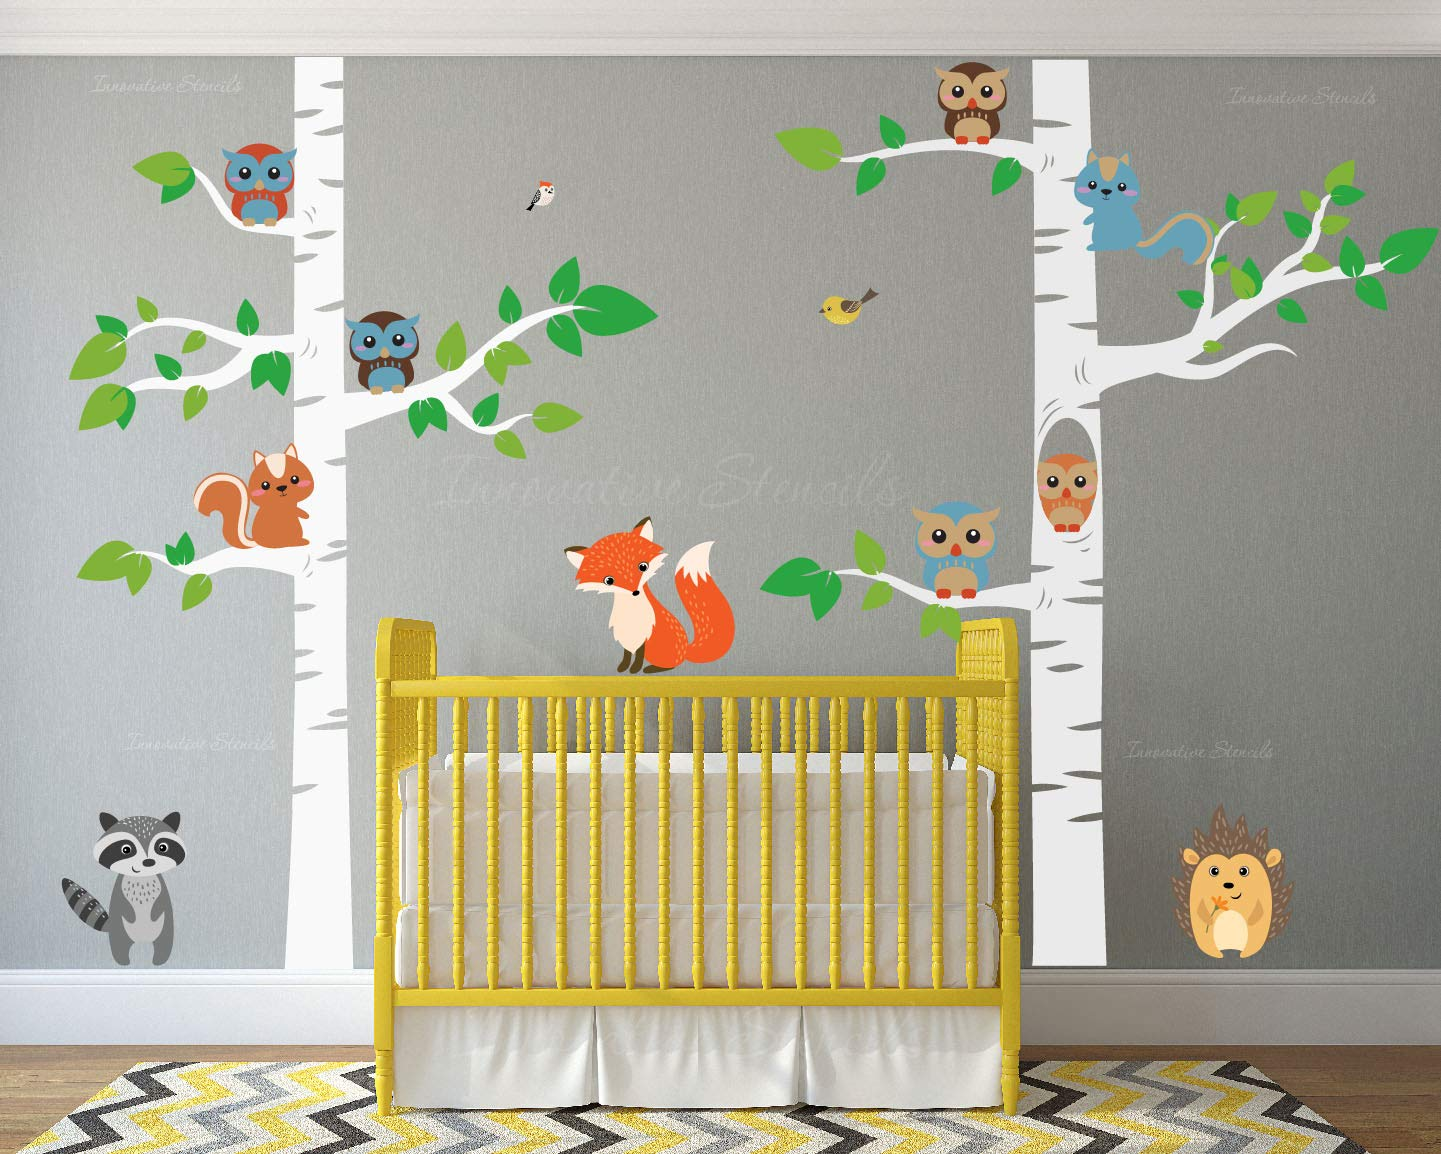 Birch Tree Wall Decal Forest with Owl Birds Squirrels Fox Porcupine Racoon Vinyl Sticker Woodland Children Decor Removable #1327 (96'' (8ft) Tall, White Trees) by Innovative Stencils